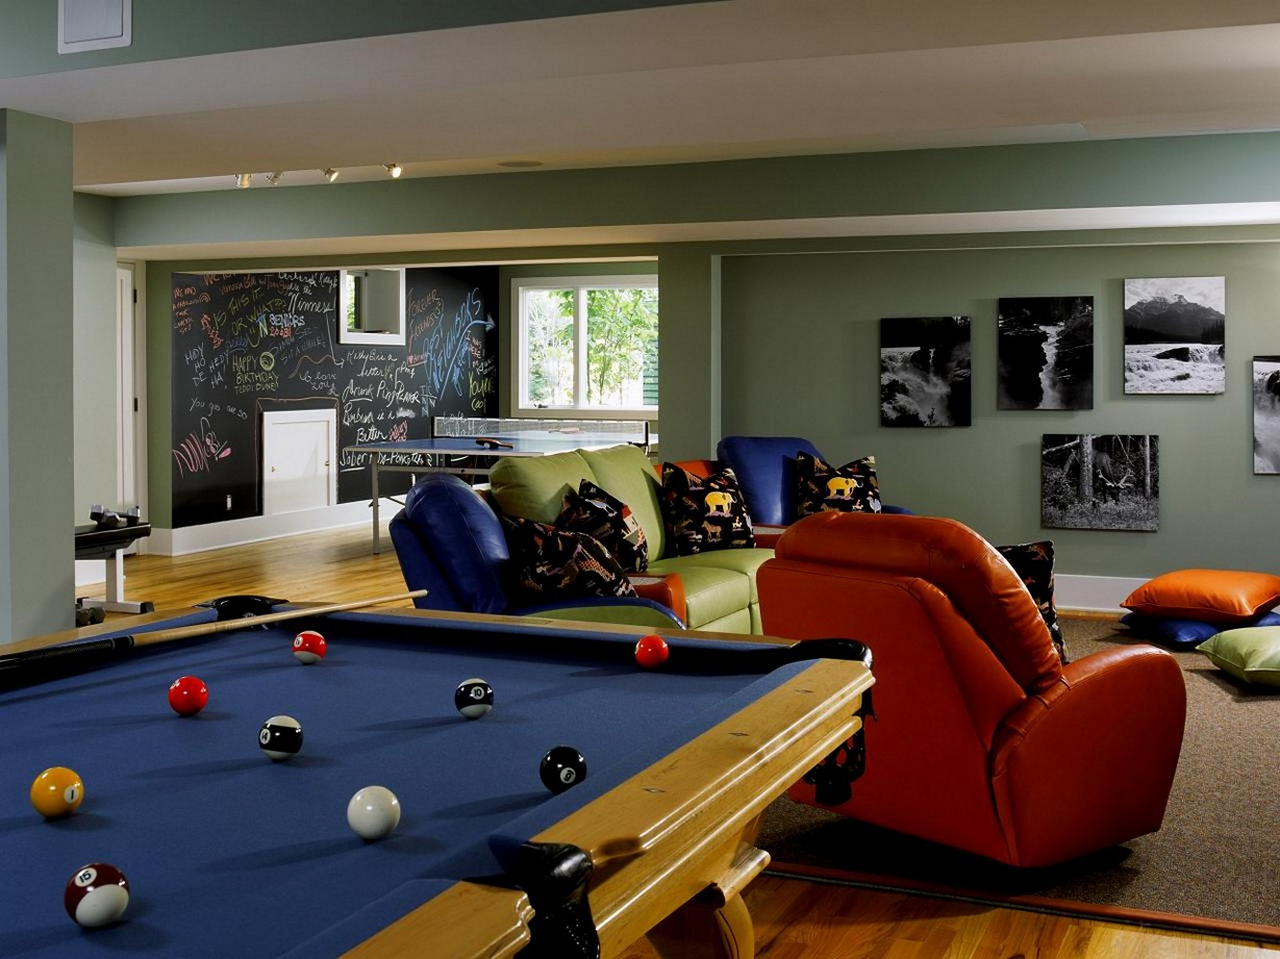 family room ideas-Family-Game-Room-Ideas-family room decorating ideas